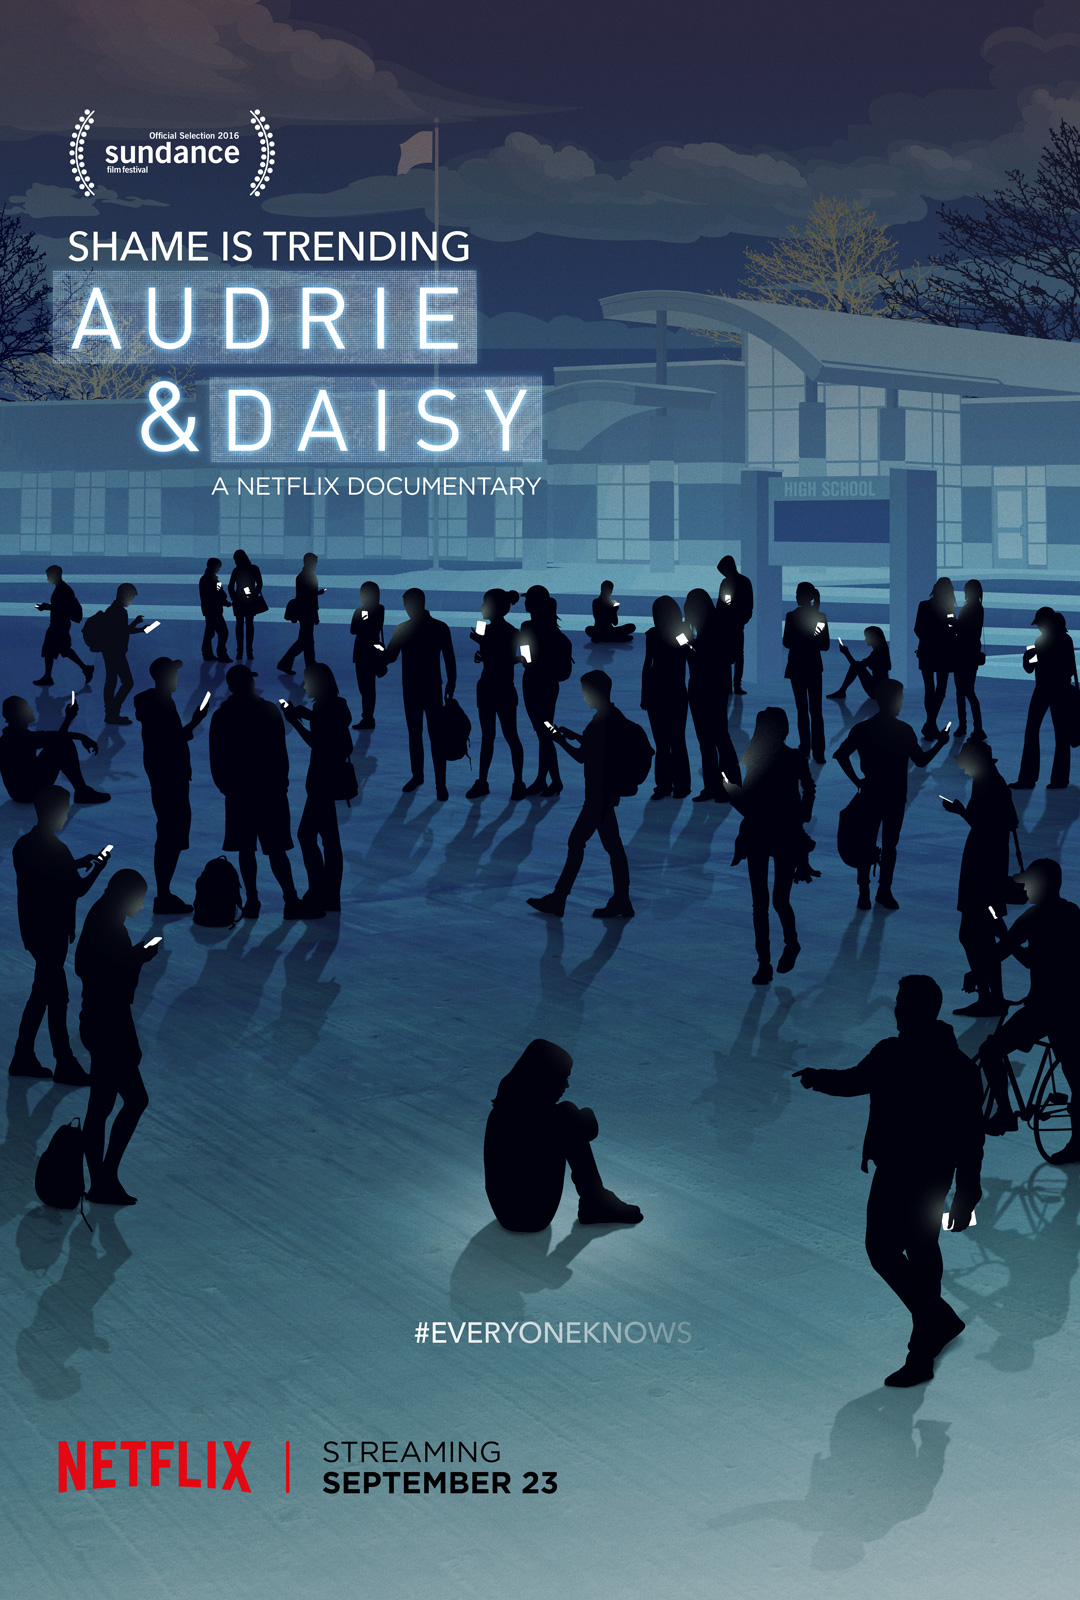 Audrie & Daisy movie poster showing people in front of a high school campus on their cell phones surrounding a person sitting on the ground